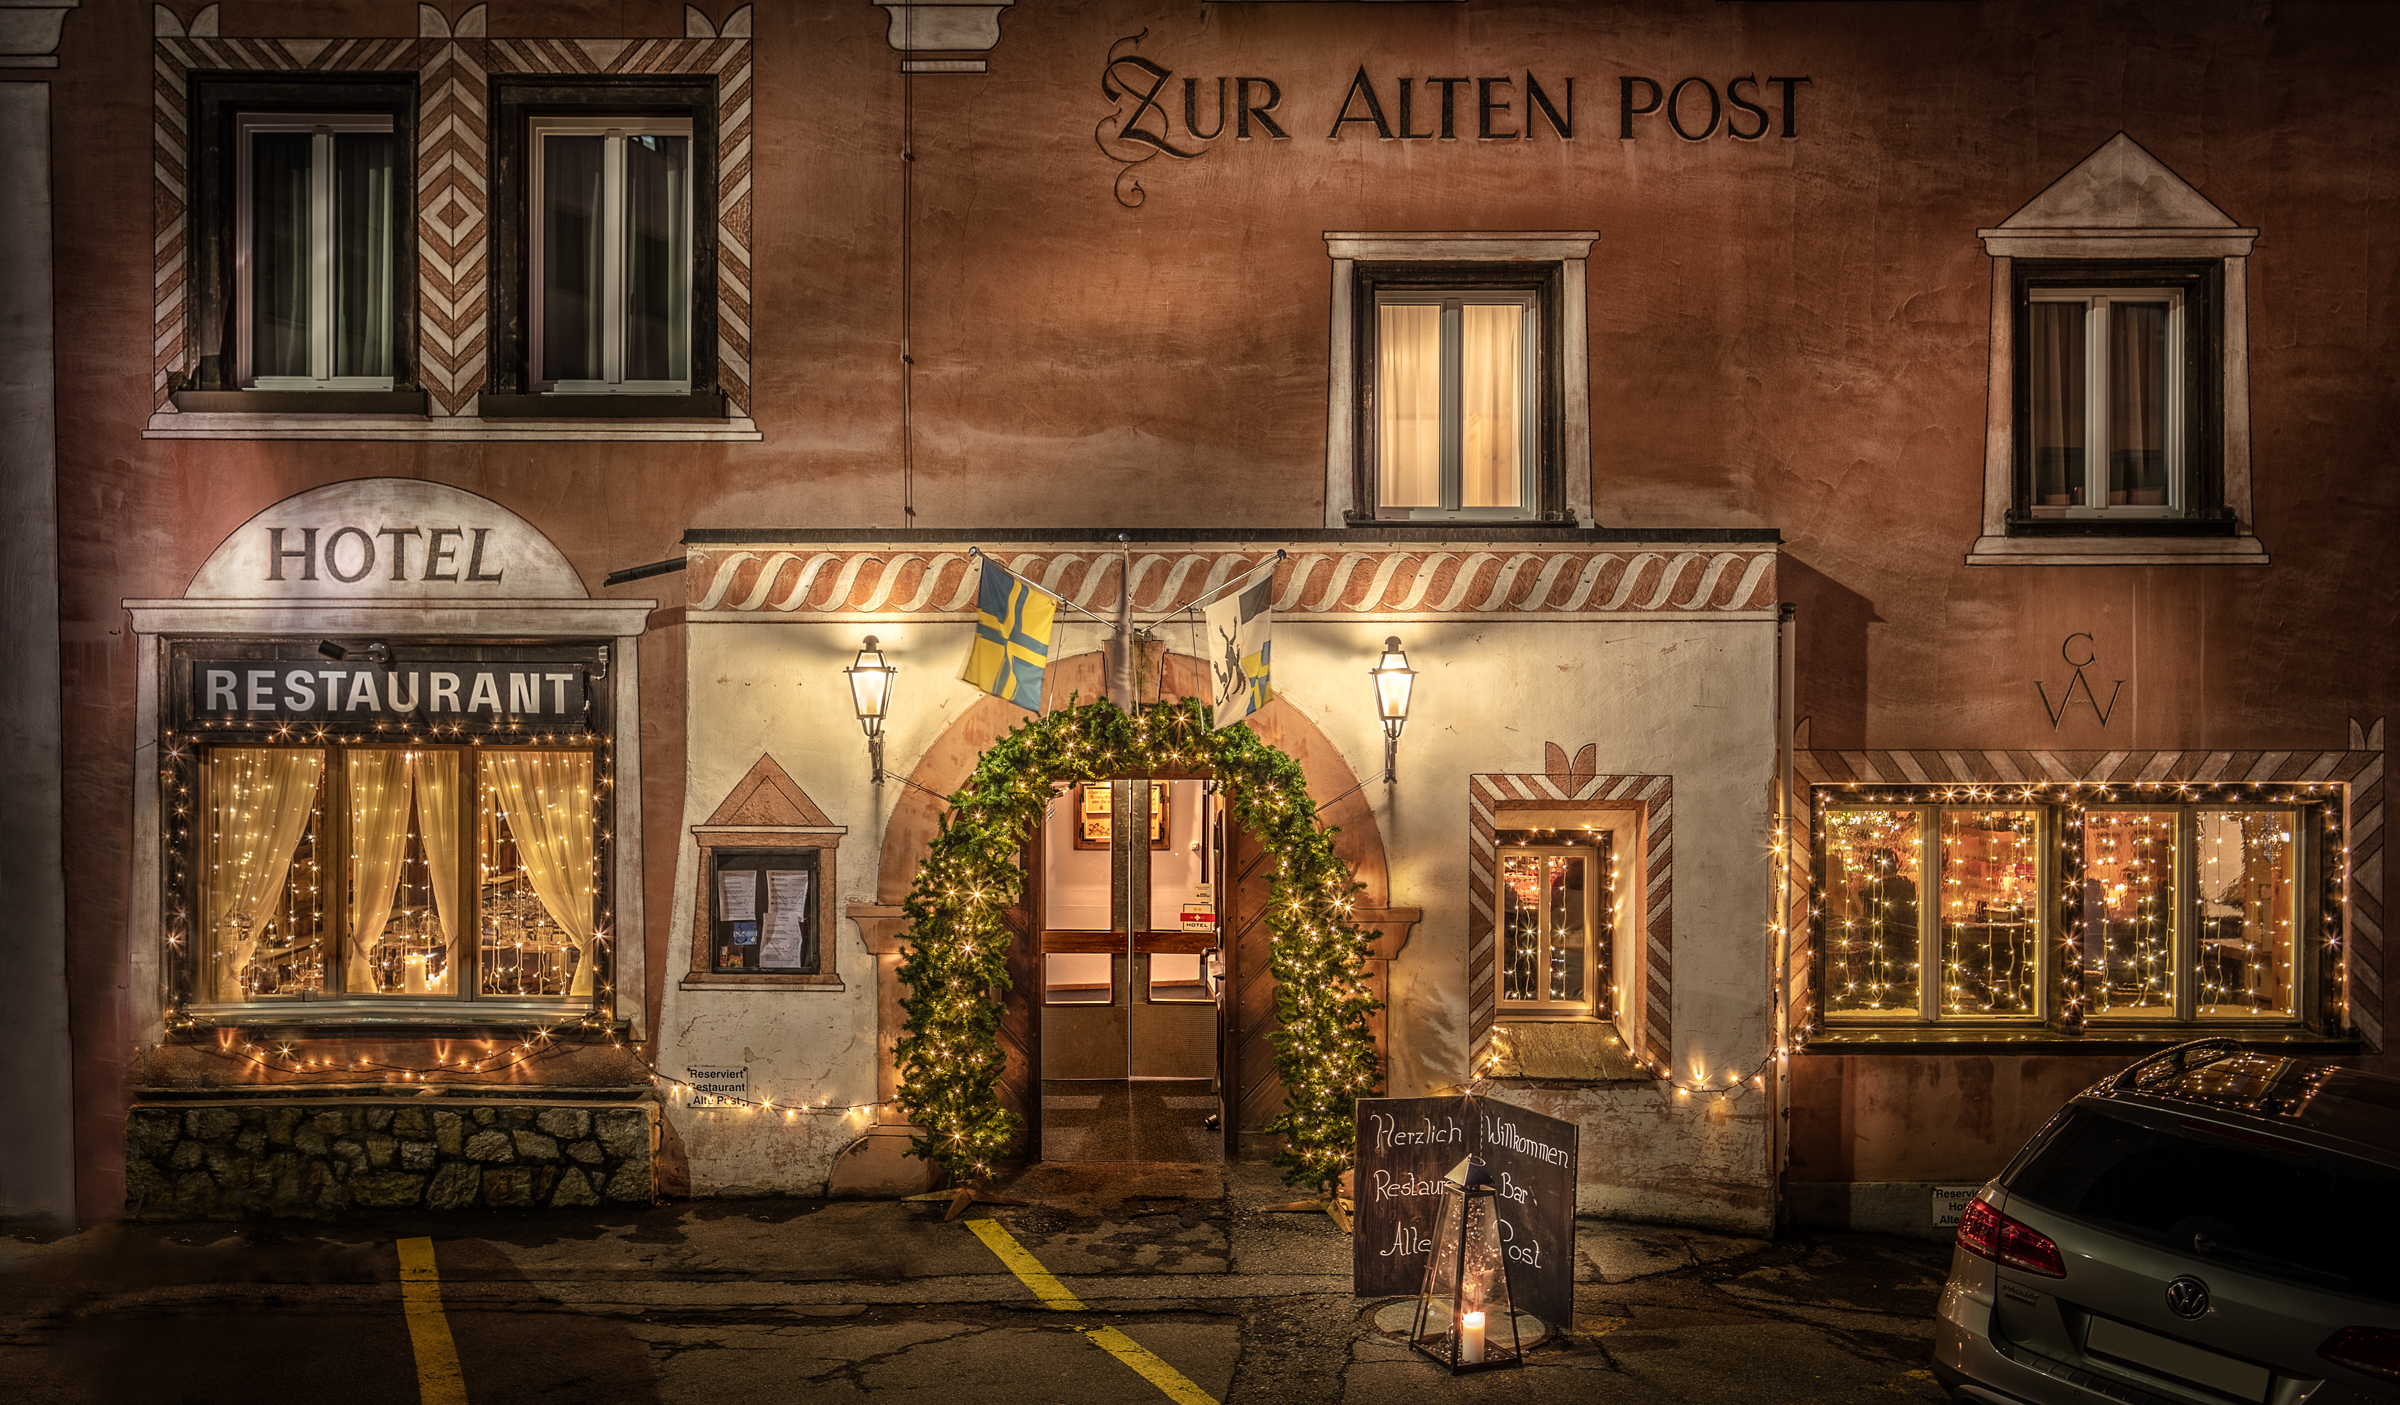 Restaurant & Bar Alte Post